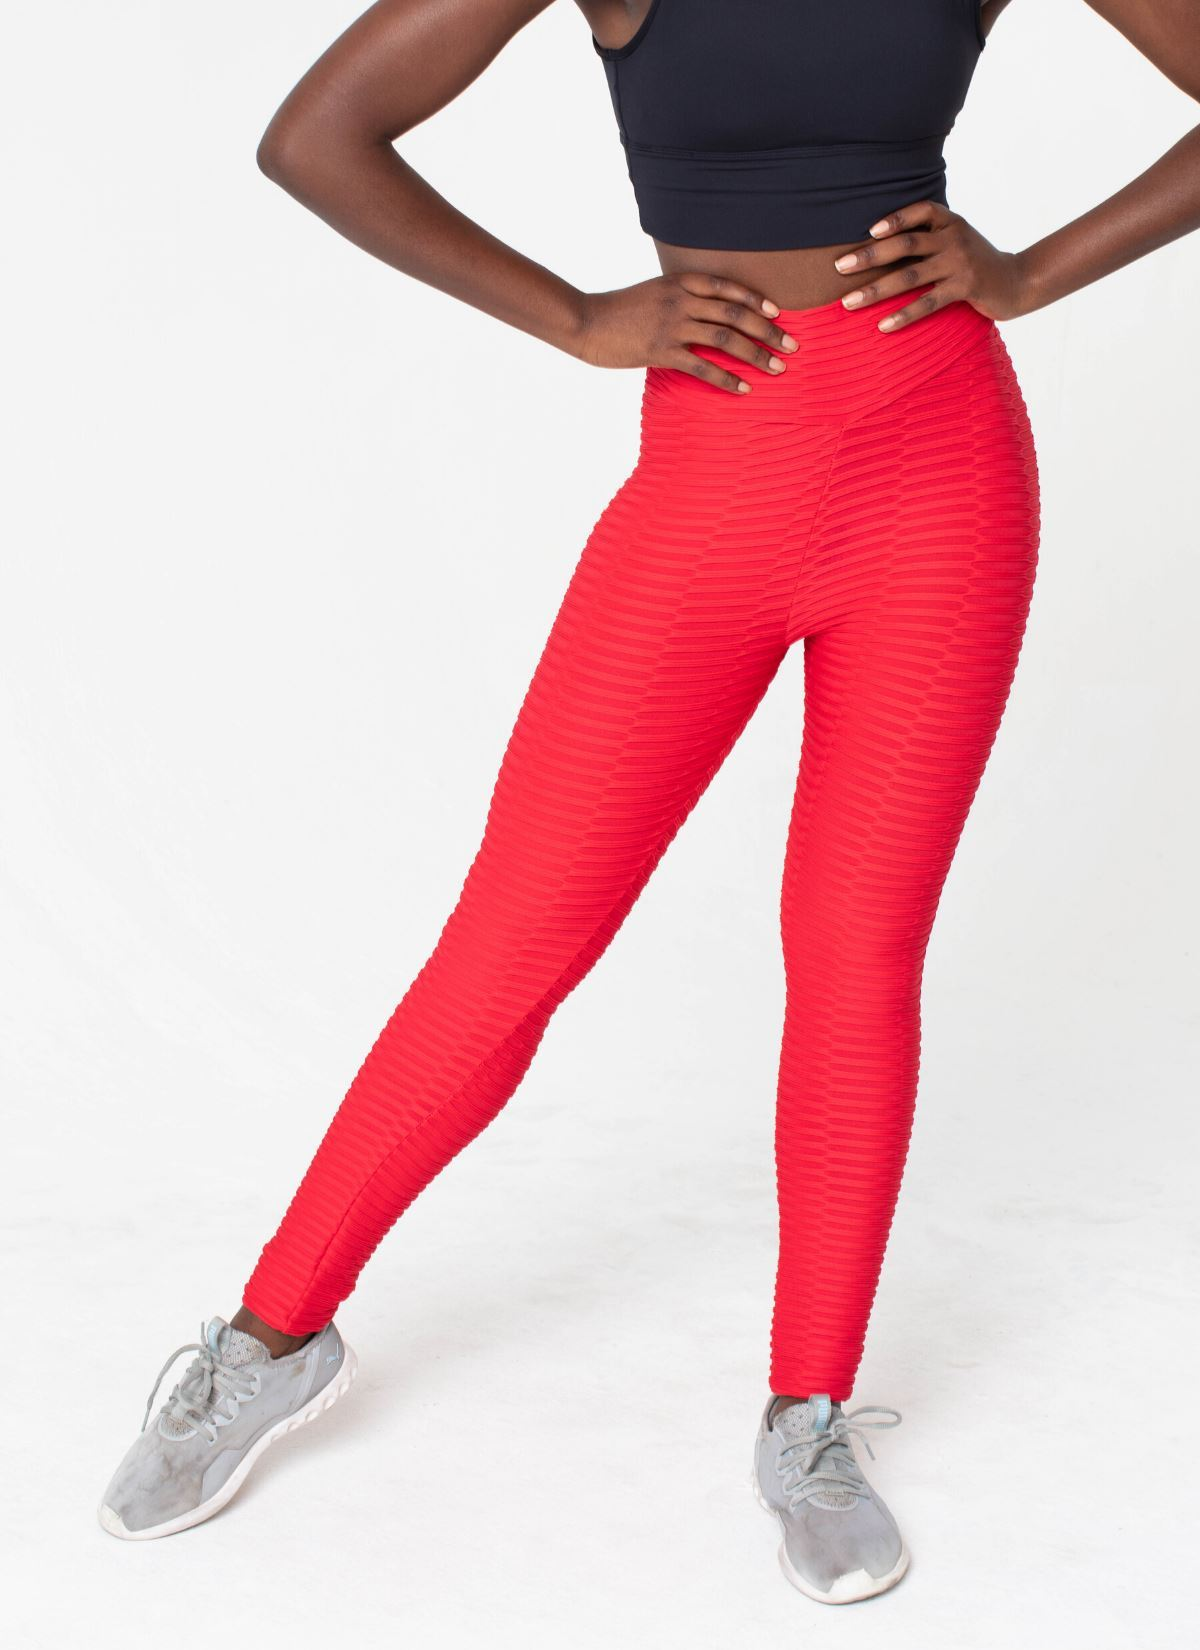 Shape Cellulite-Friendly Seamless Red Leggings - Athlete Body